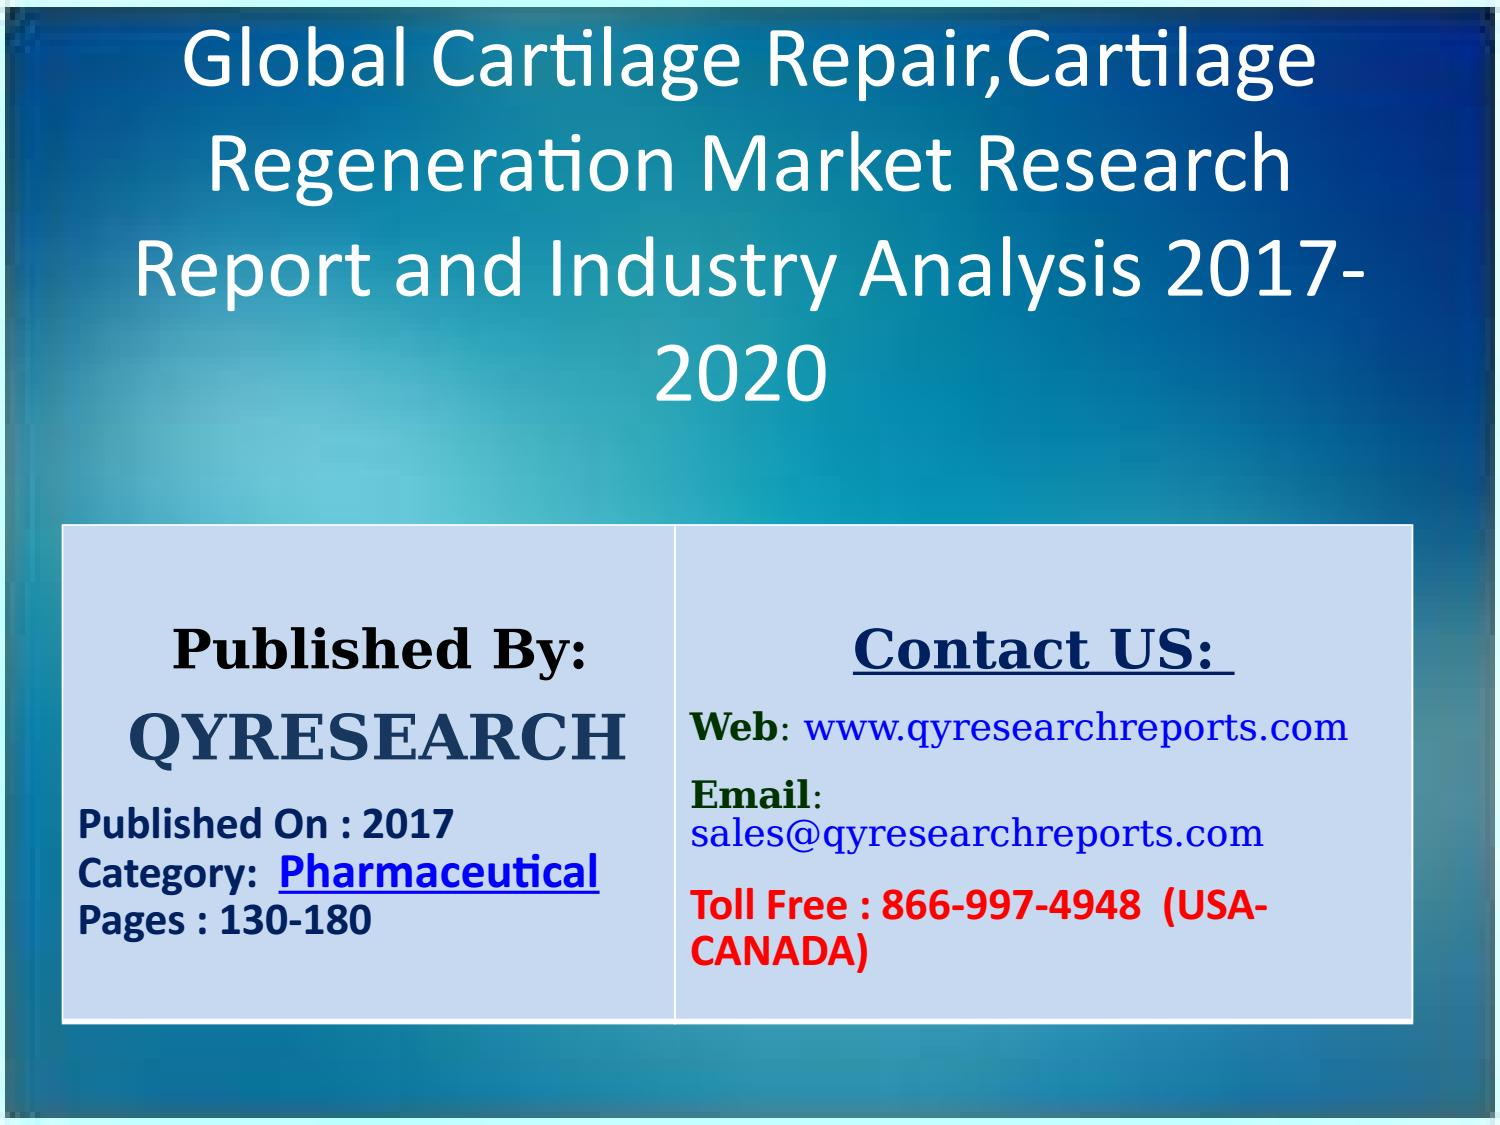 polyurethanes pu market research report to Polyurethane (pu) market size is estimated to exceed usd 75 billion by 2023 according to a new research report by global market insights, inc rising demand for sustainable, high efficiency and innovative products along with extensive polymer r&d is driving the polyurethanes market.